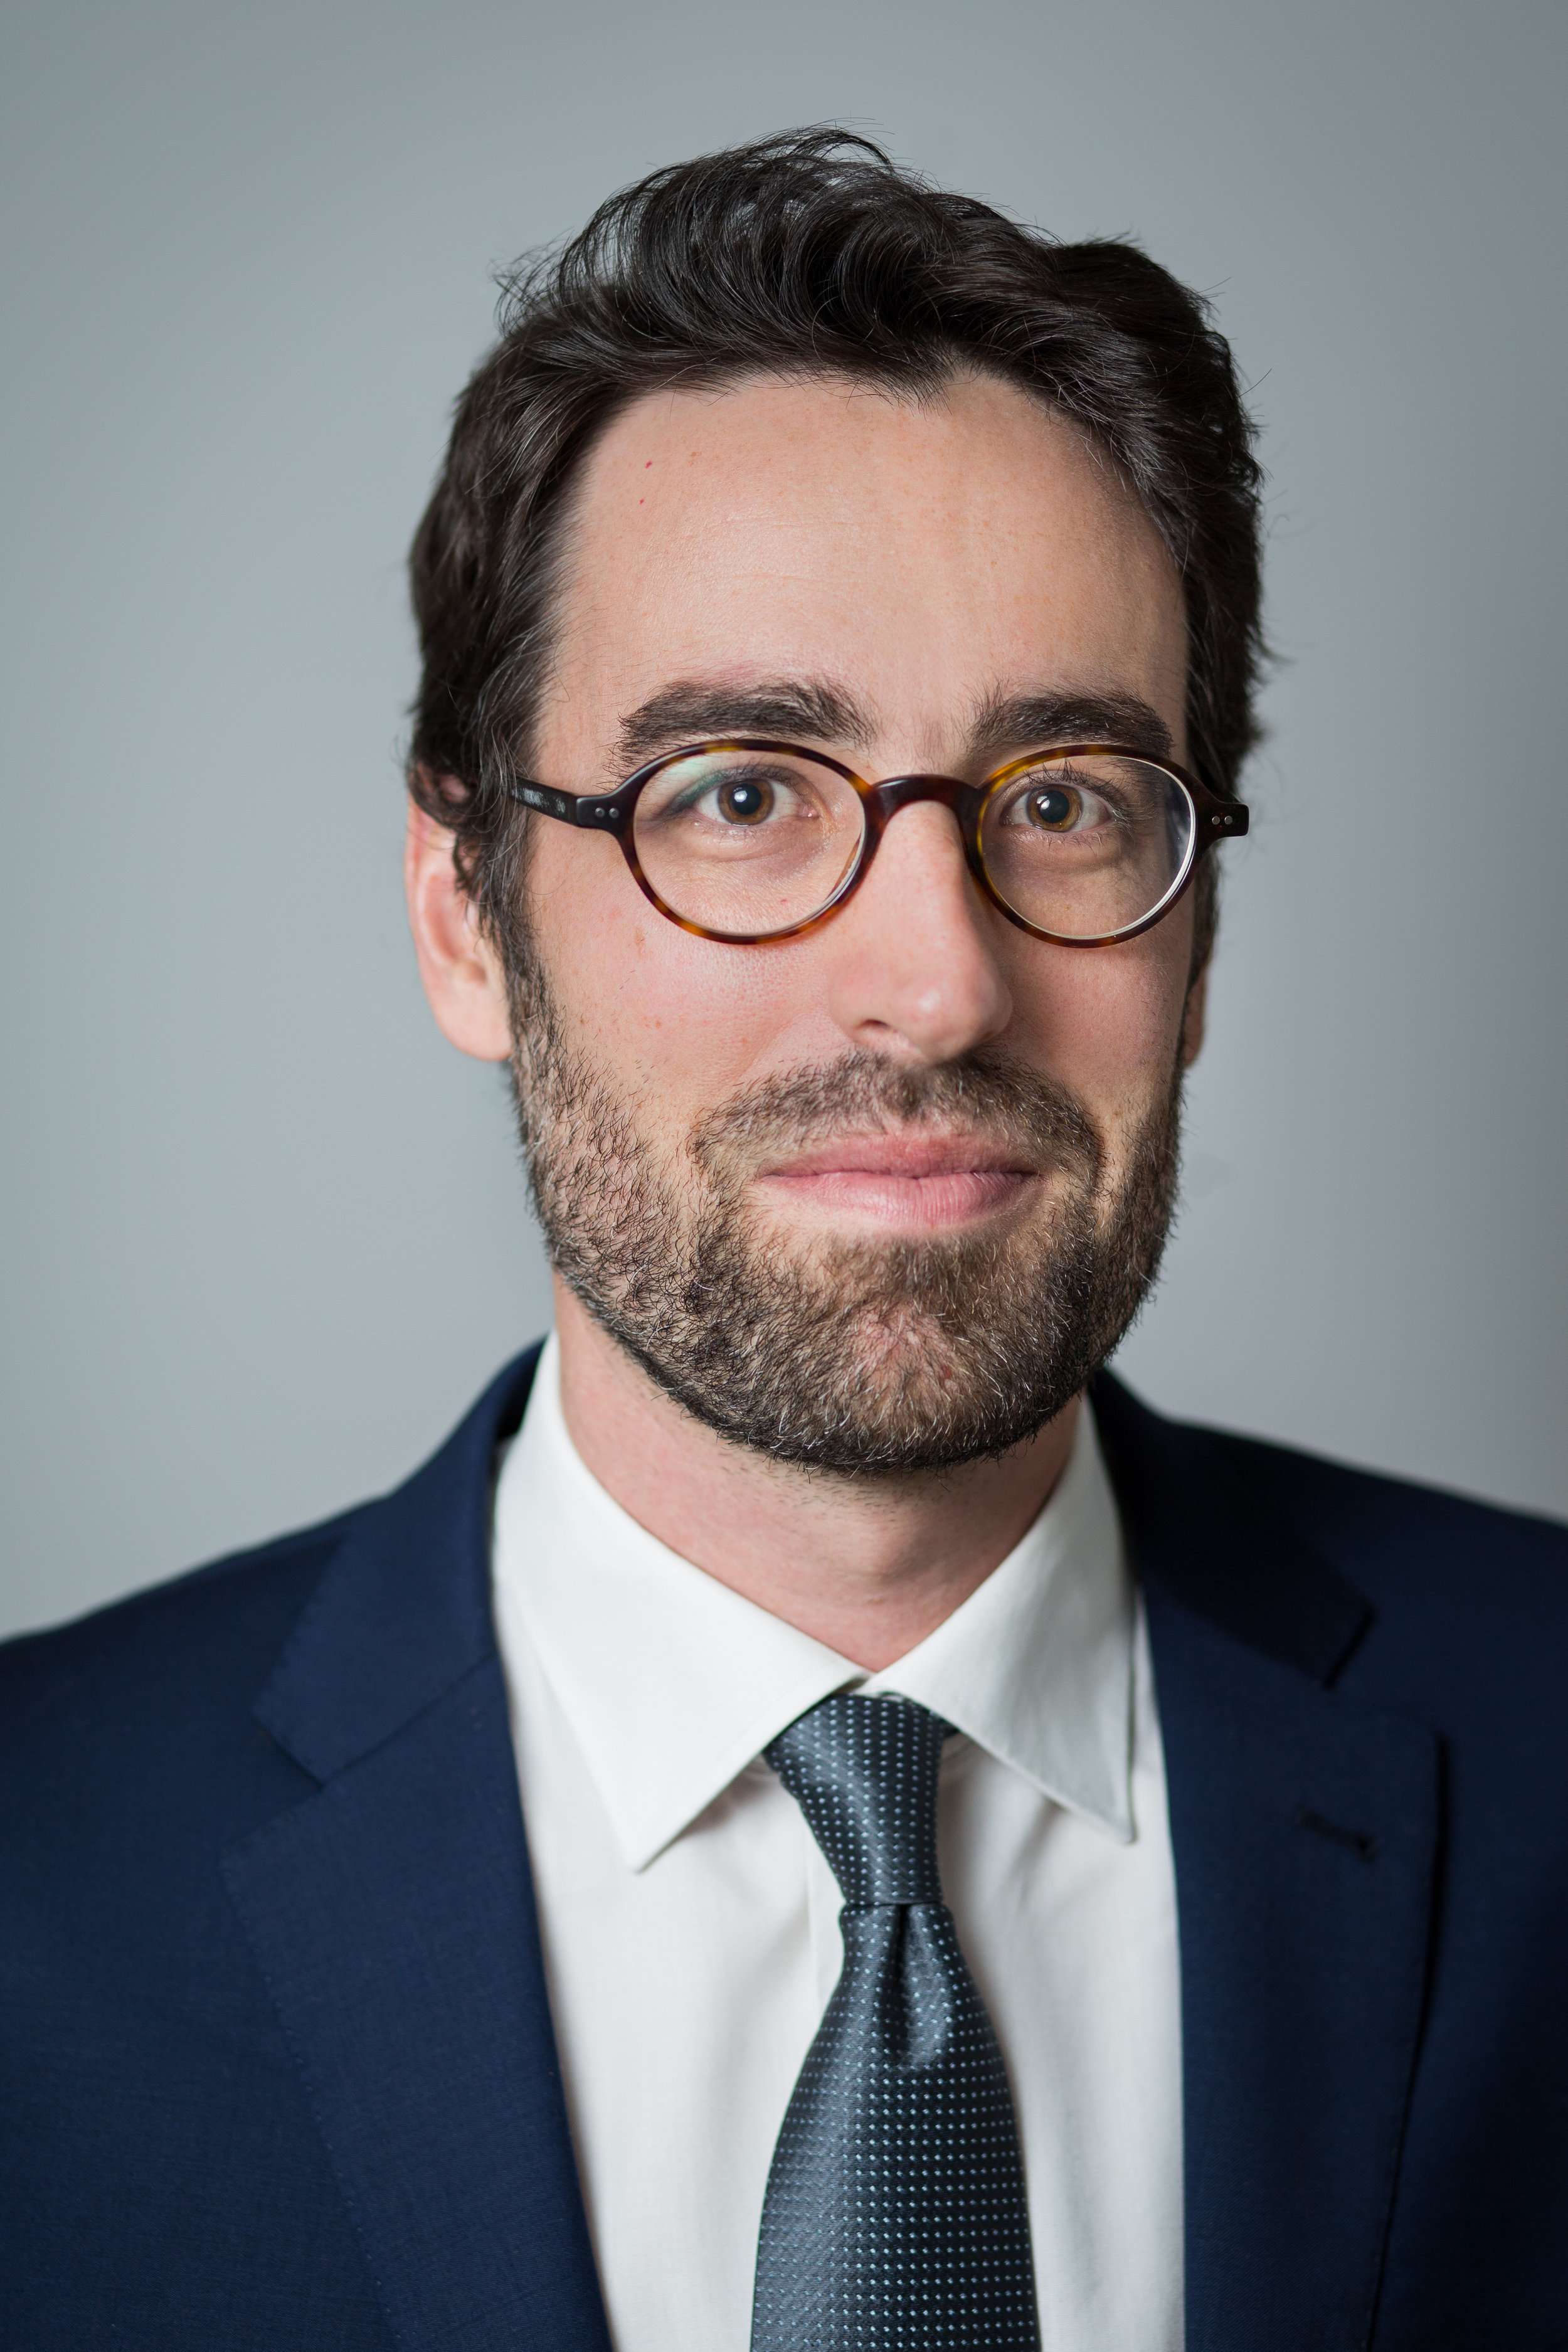 Aurelien Petitot - Chief Investment Officer